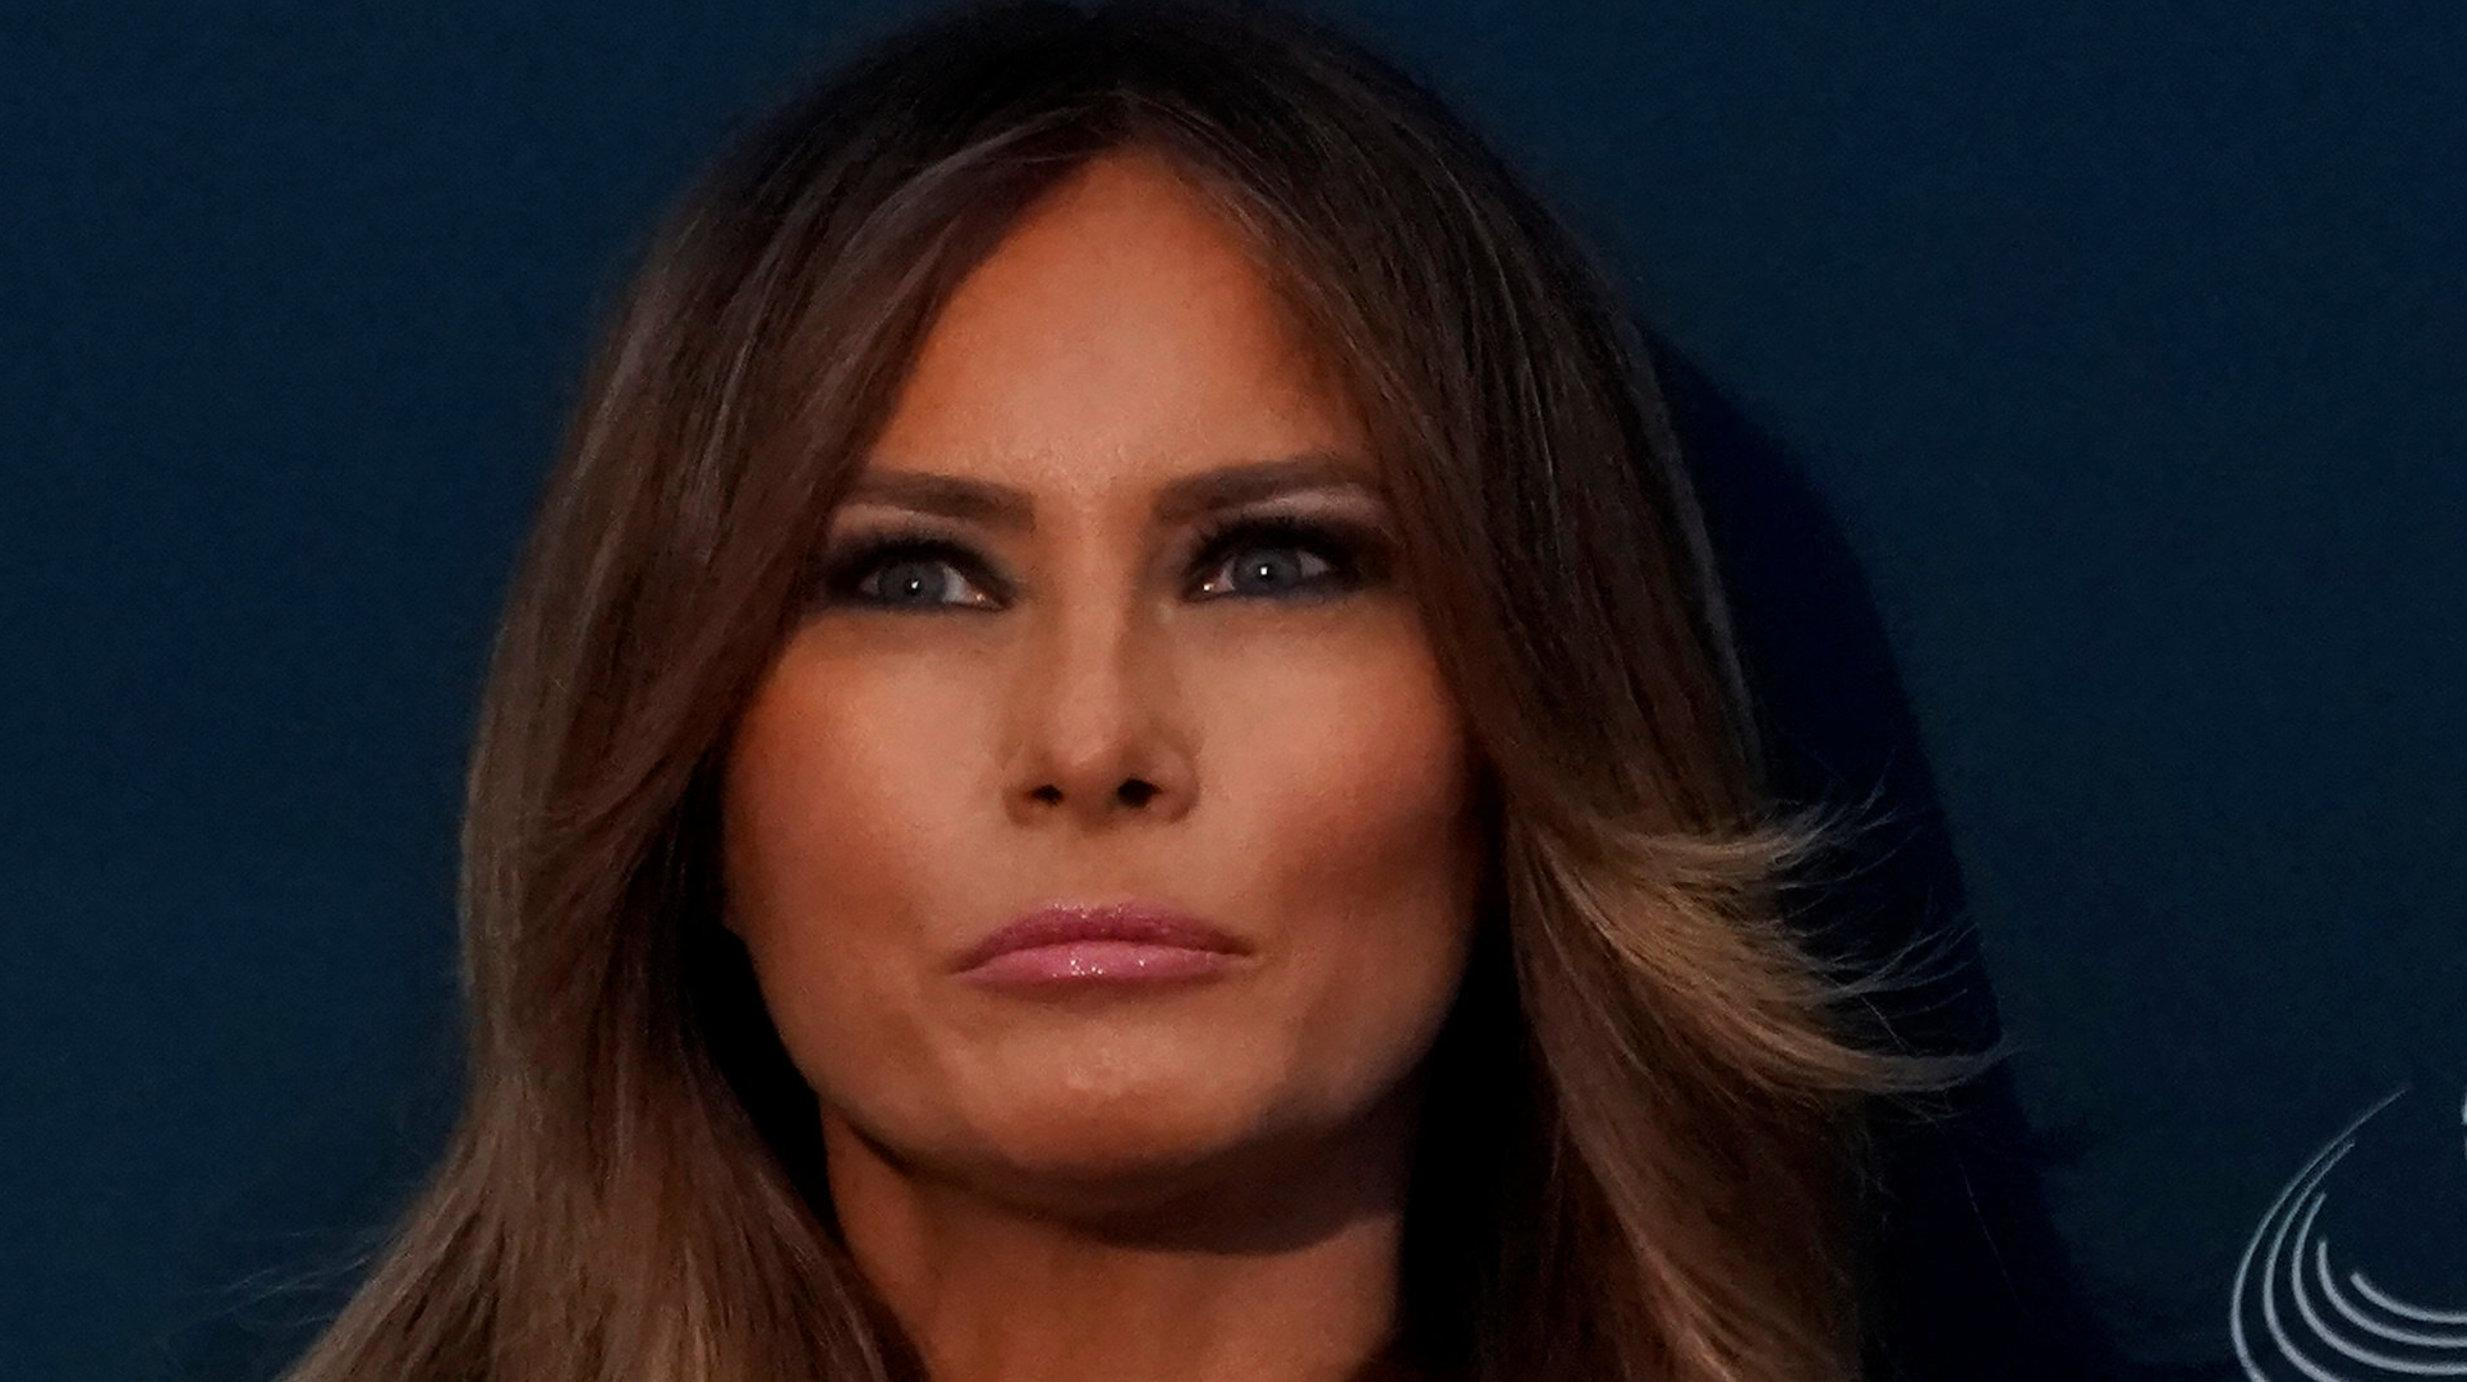 Melania Trump Jets To Mar-a-Lago On Military Plane After POTUS Grounds Pelosi's Troop Visit